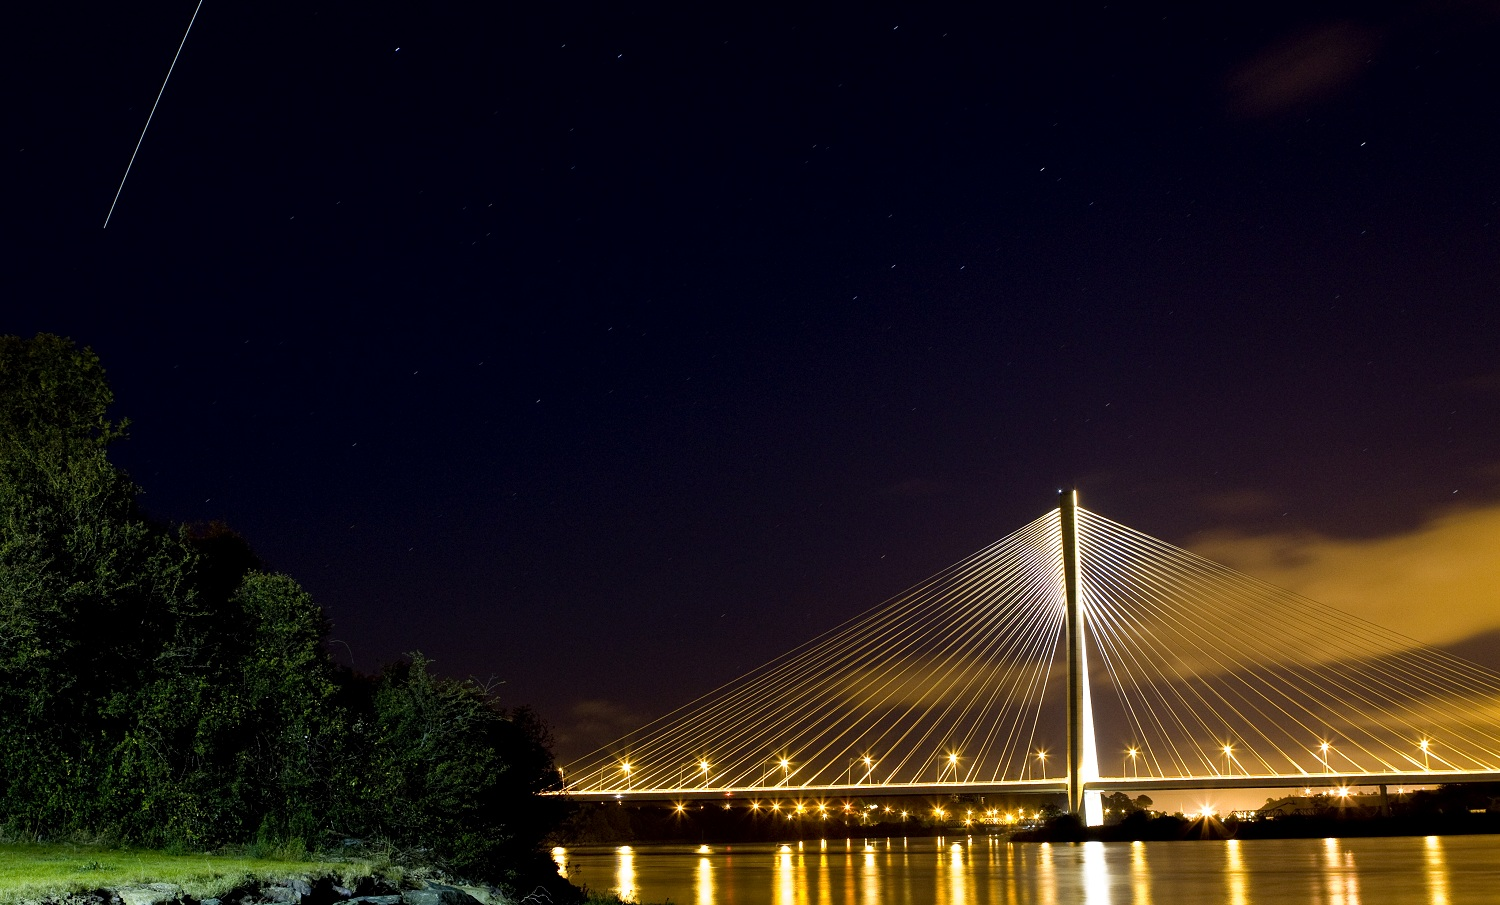 International Space Station Pictured over new Waterford Bridge